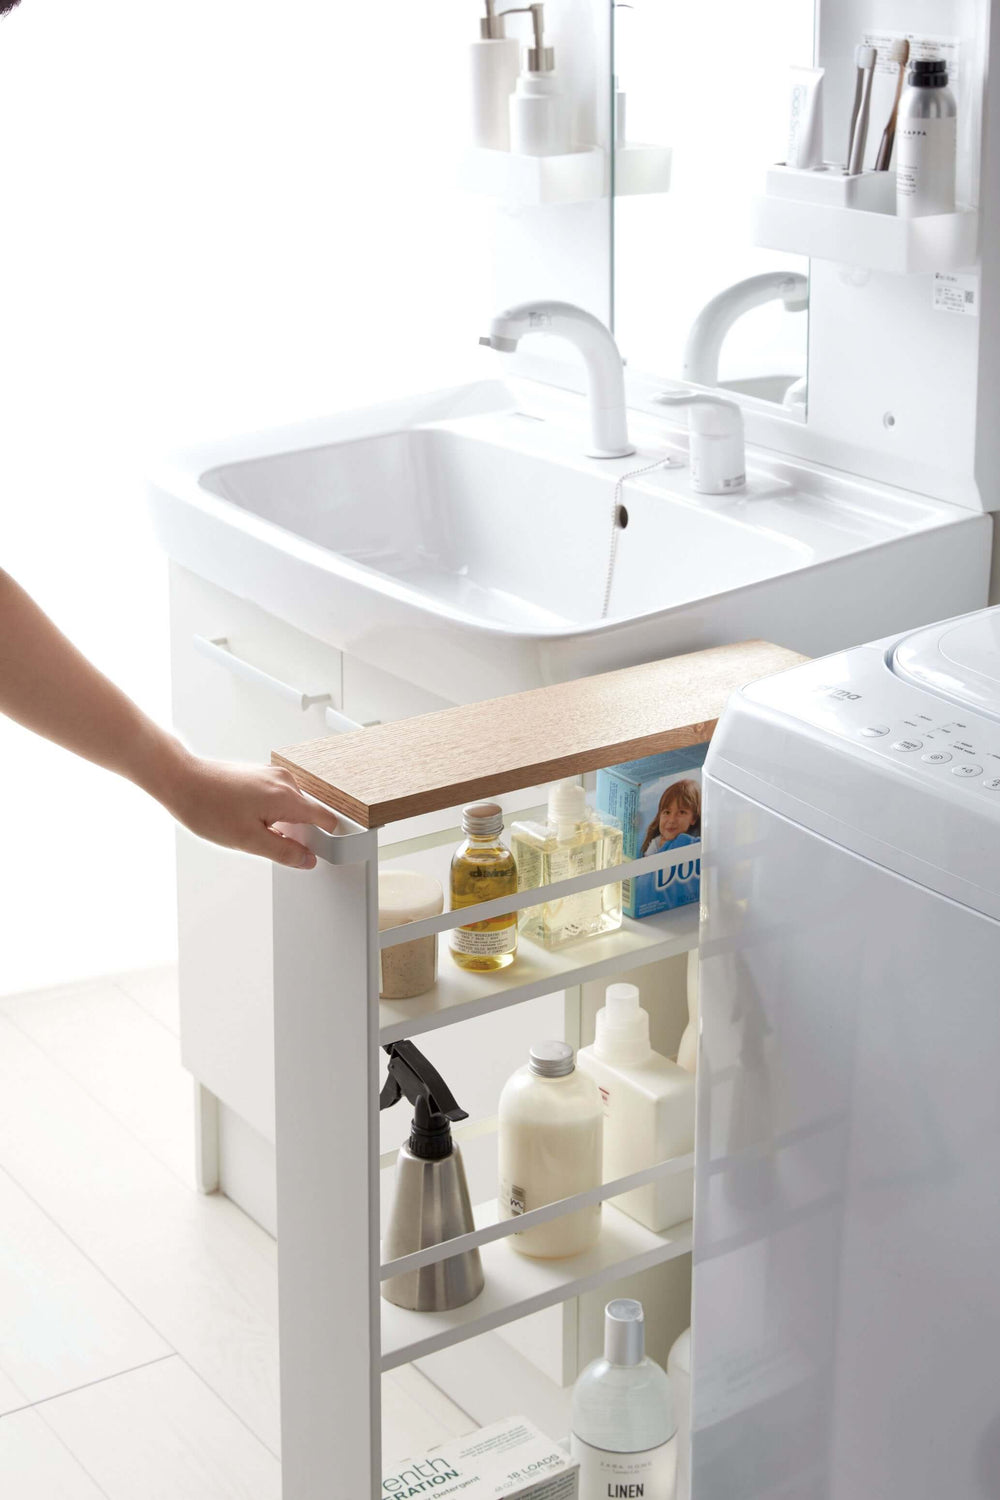 Person easily rolling the Yamazaki Slim Storage Cart out from between the bathroom vanity and appliance